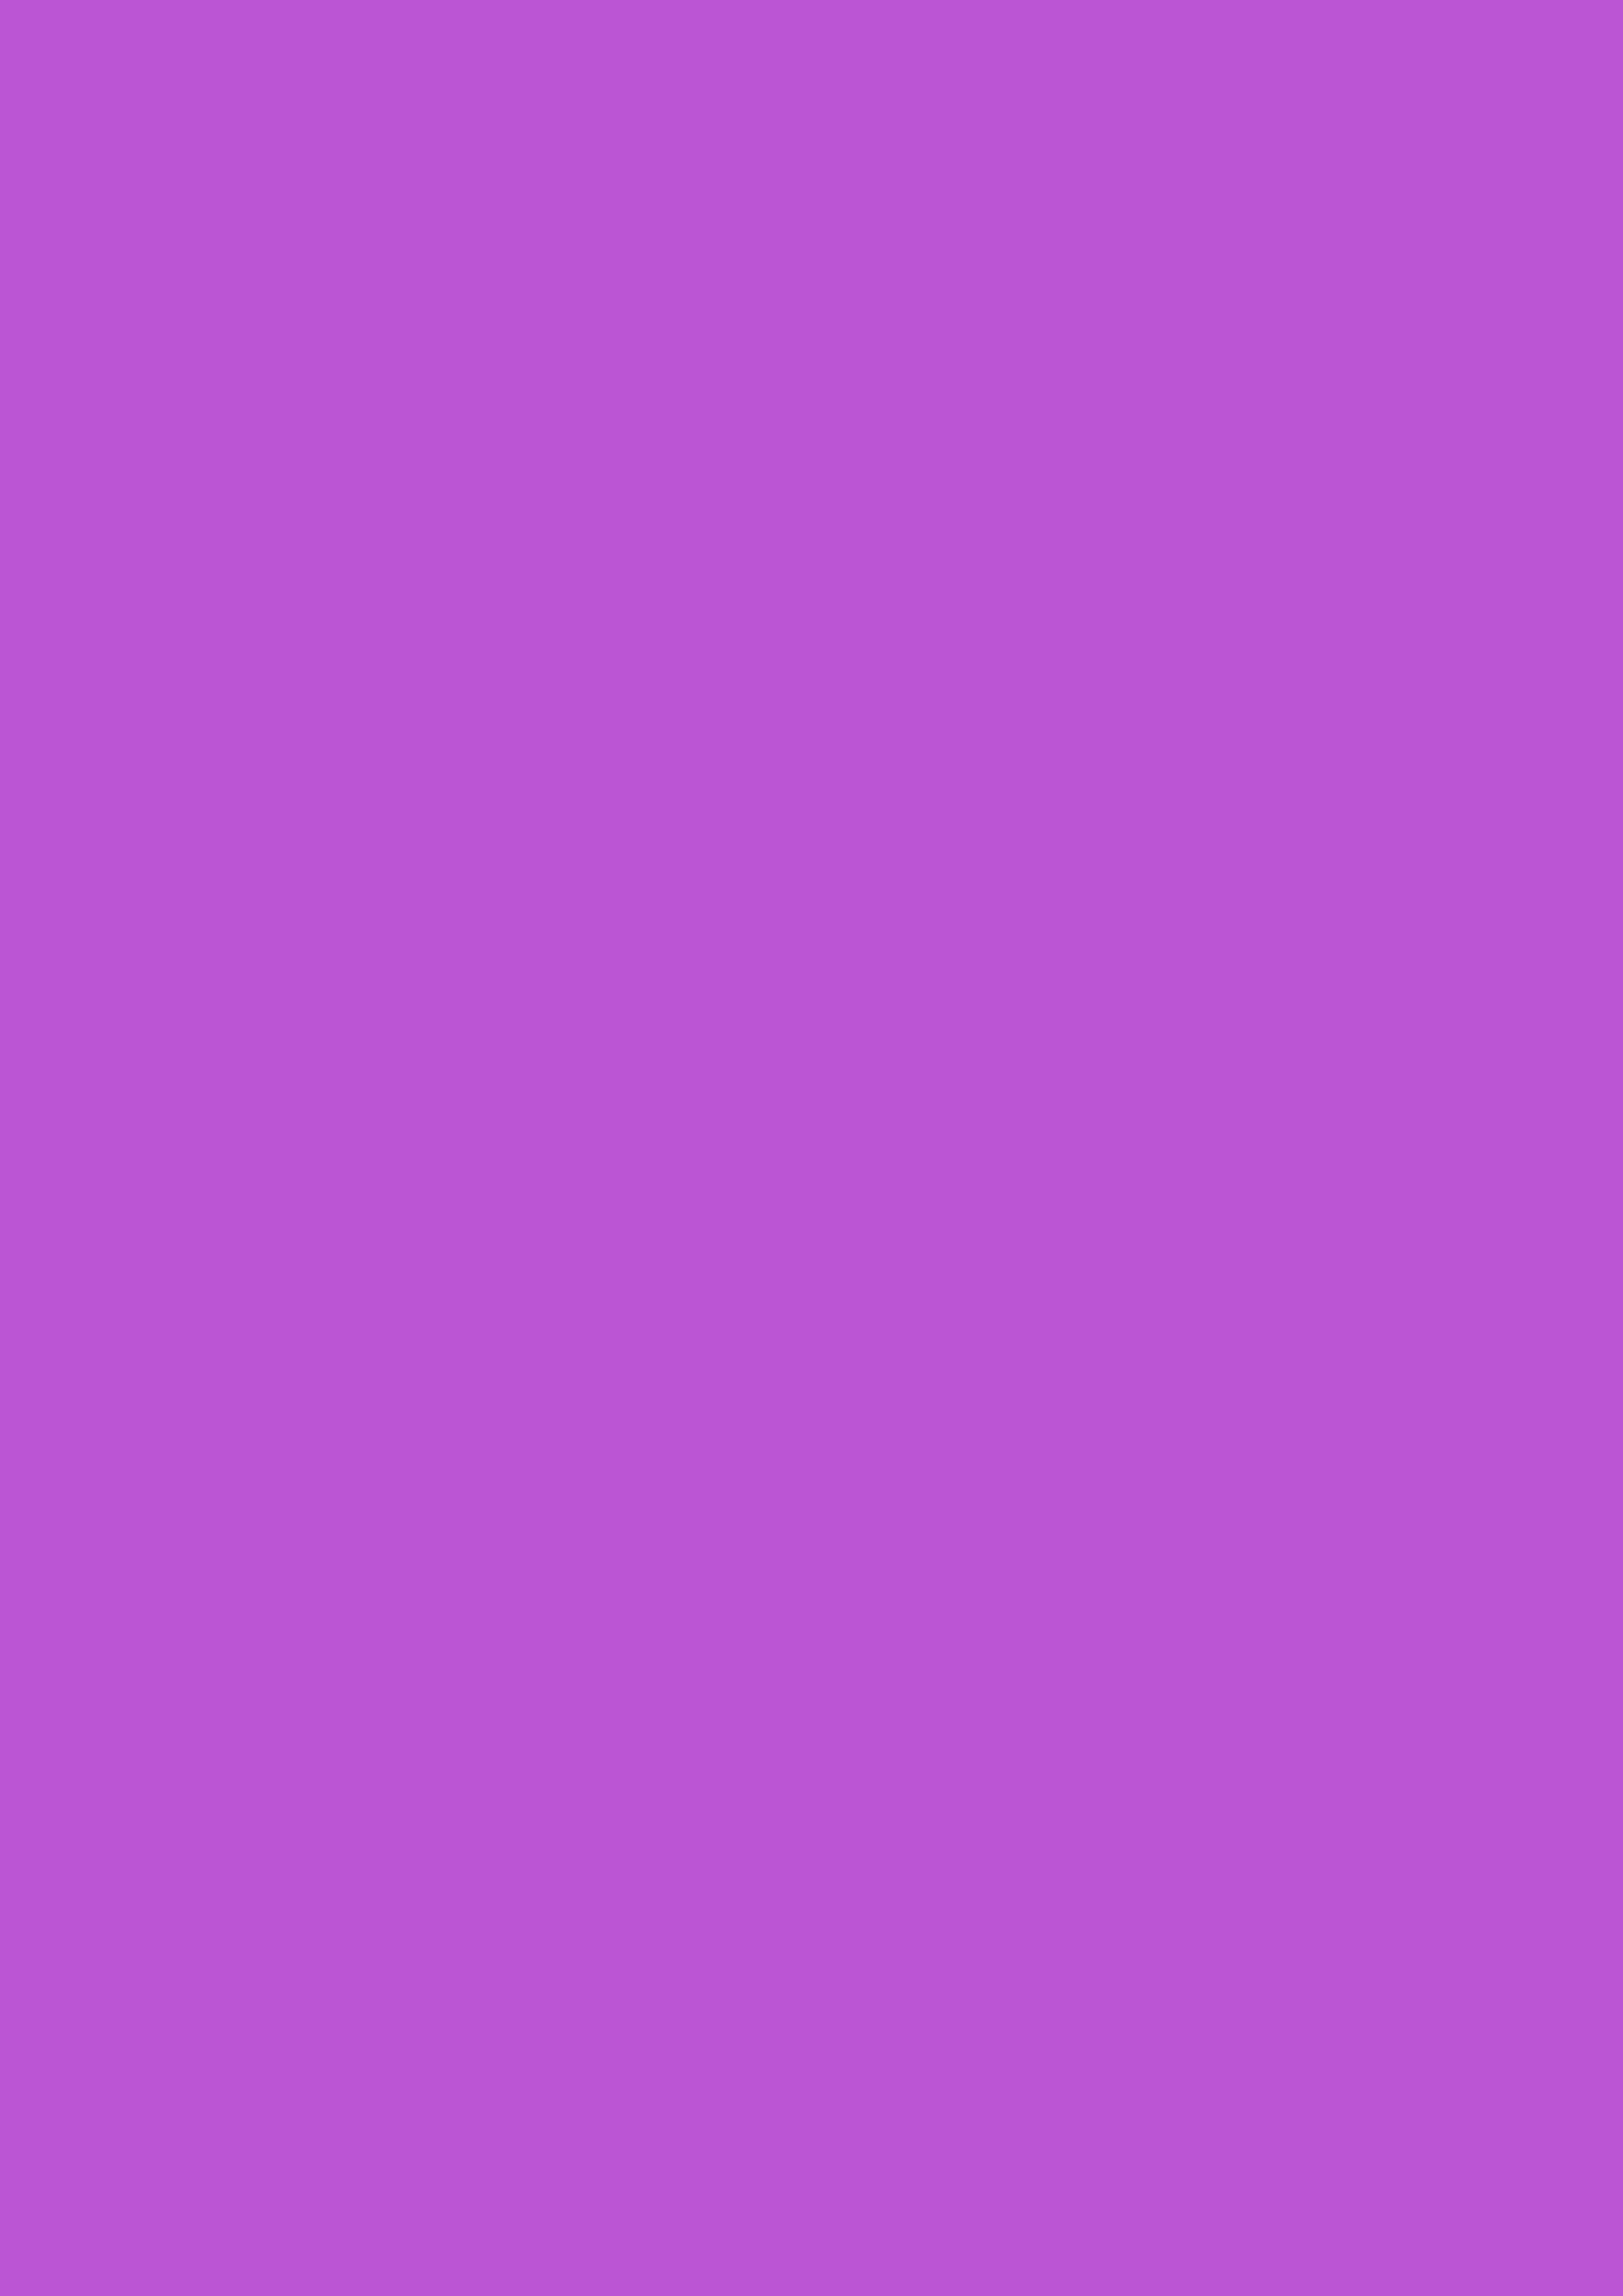 2480x3508 Medium Orchid Solid Color Background